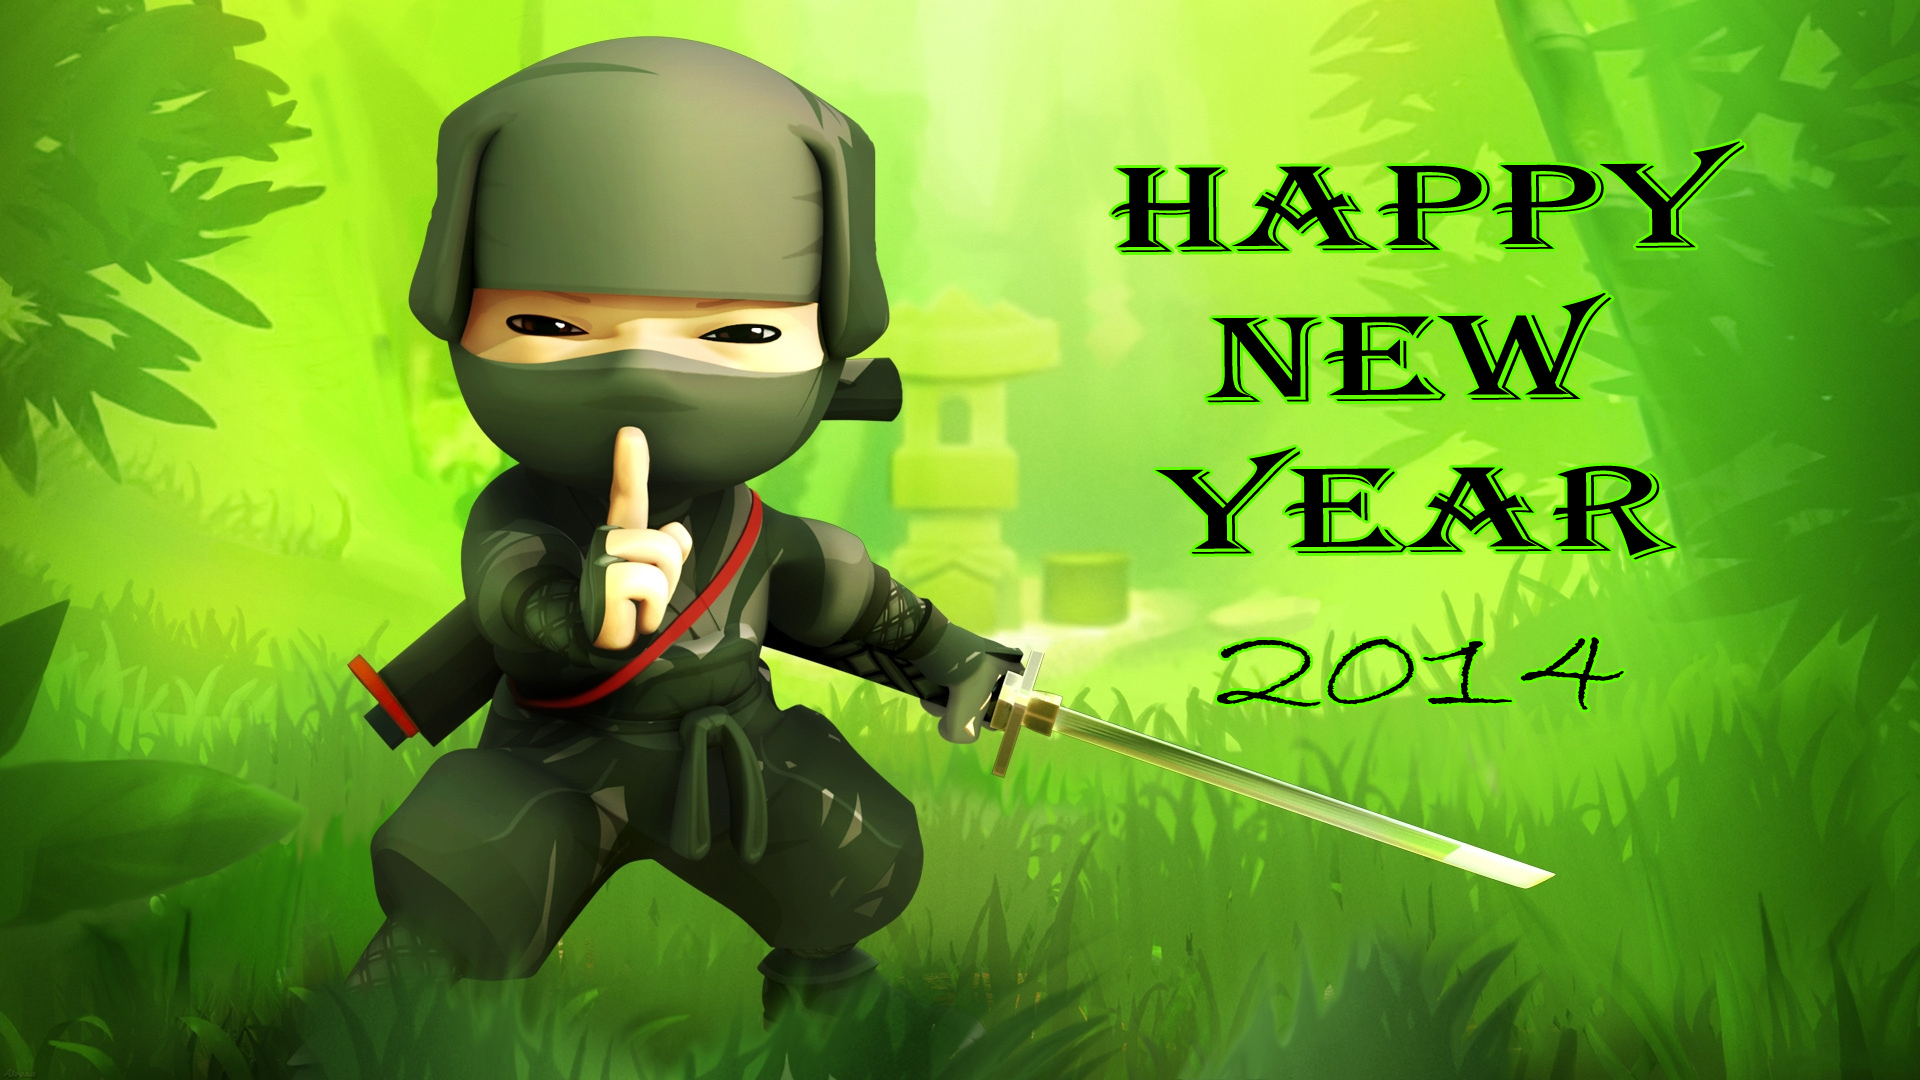 New Year Photos - Wallpaper, High Definition, High Quality, Widescreen